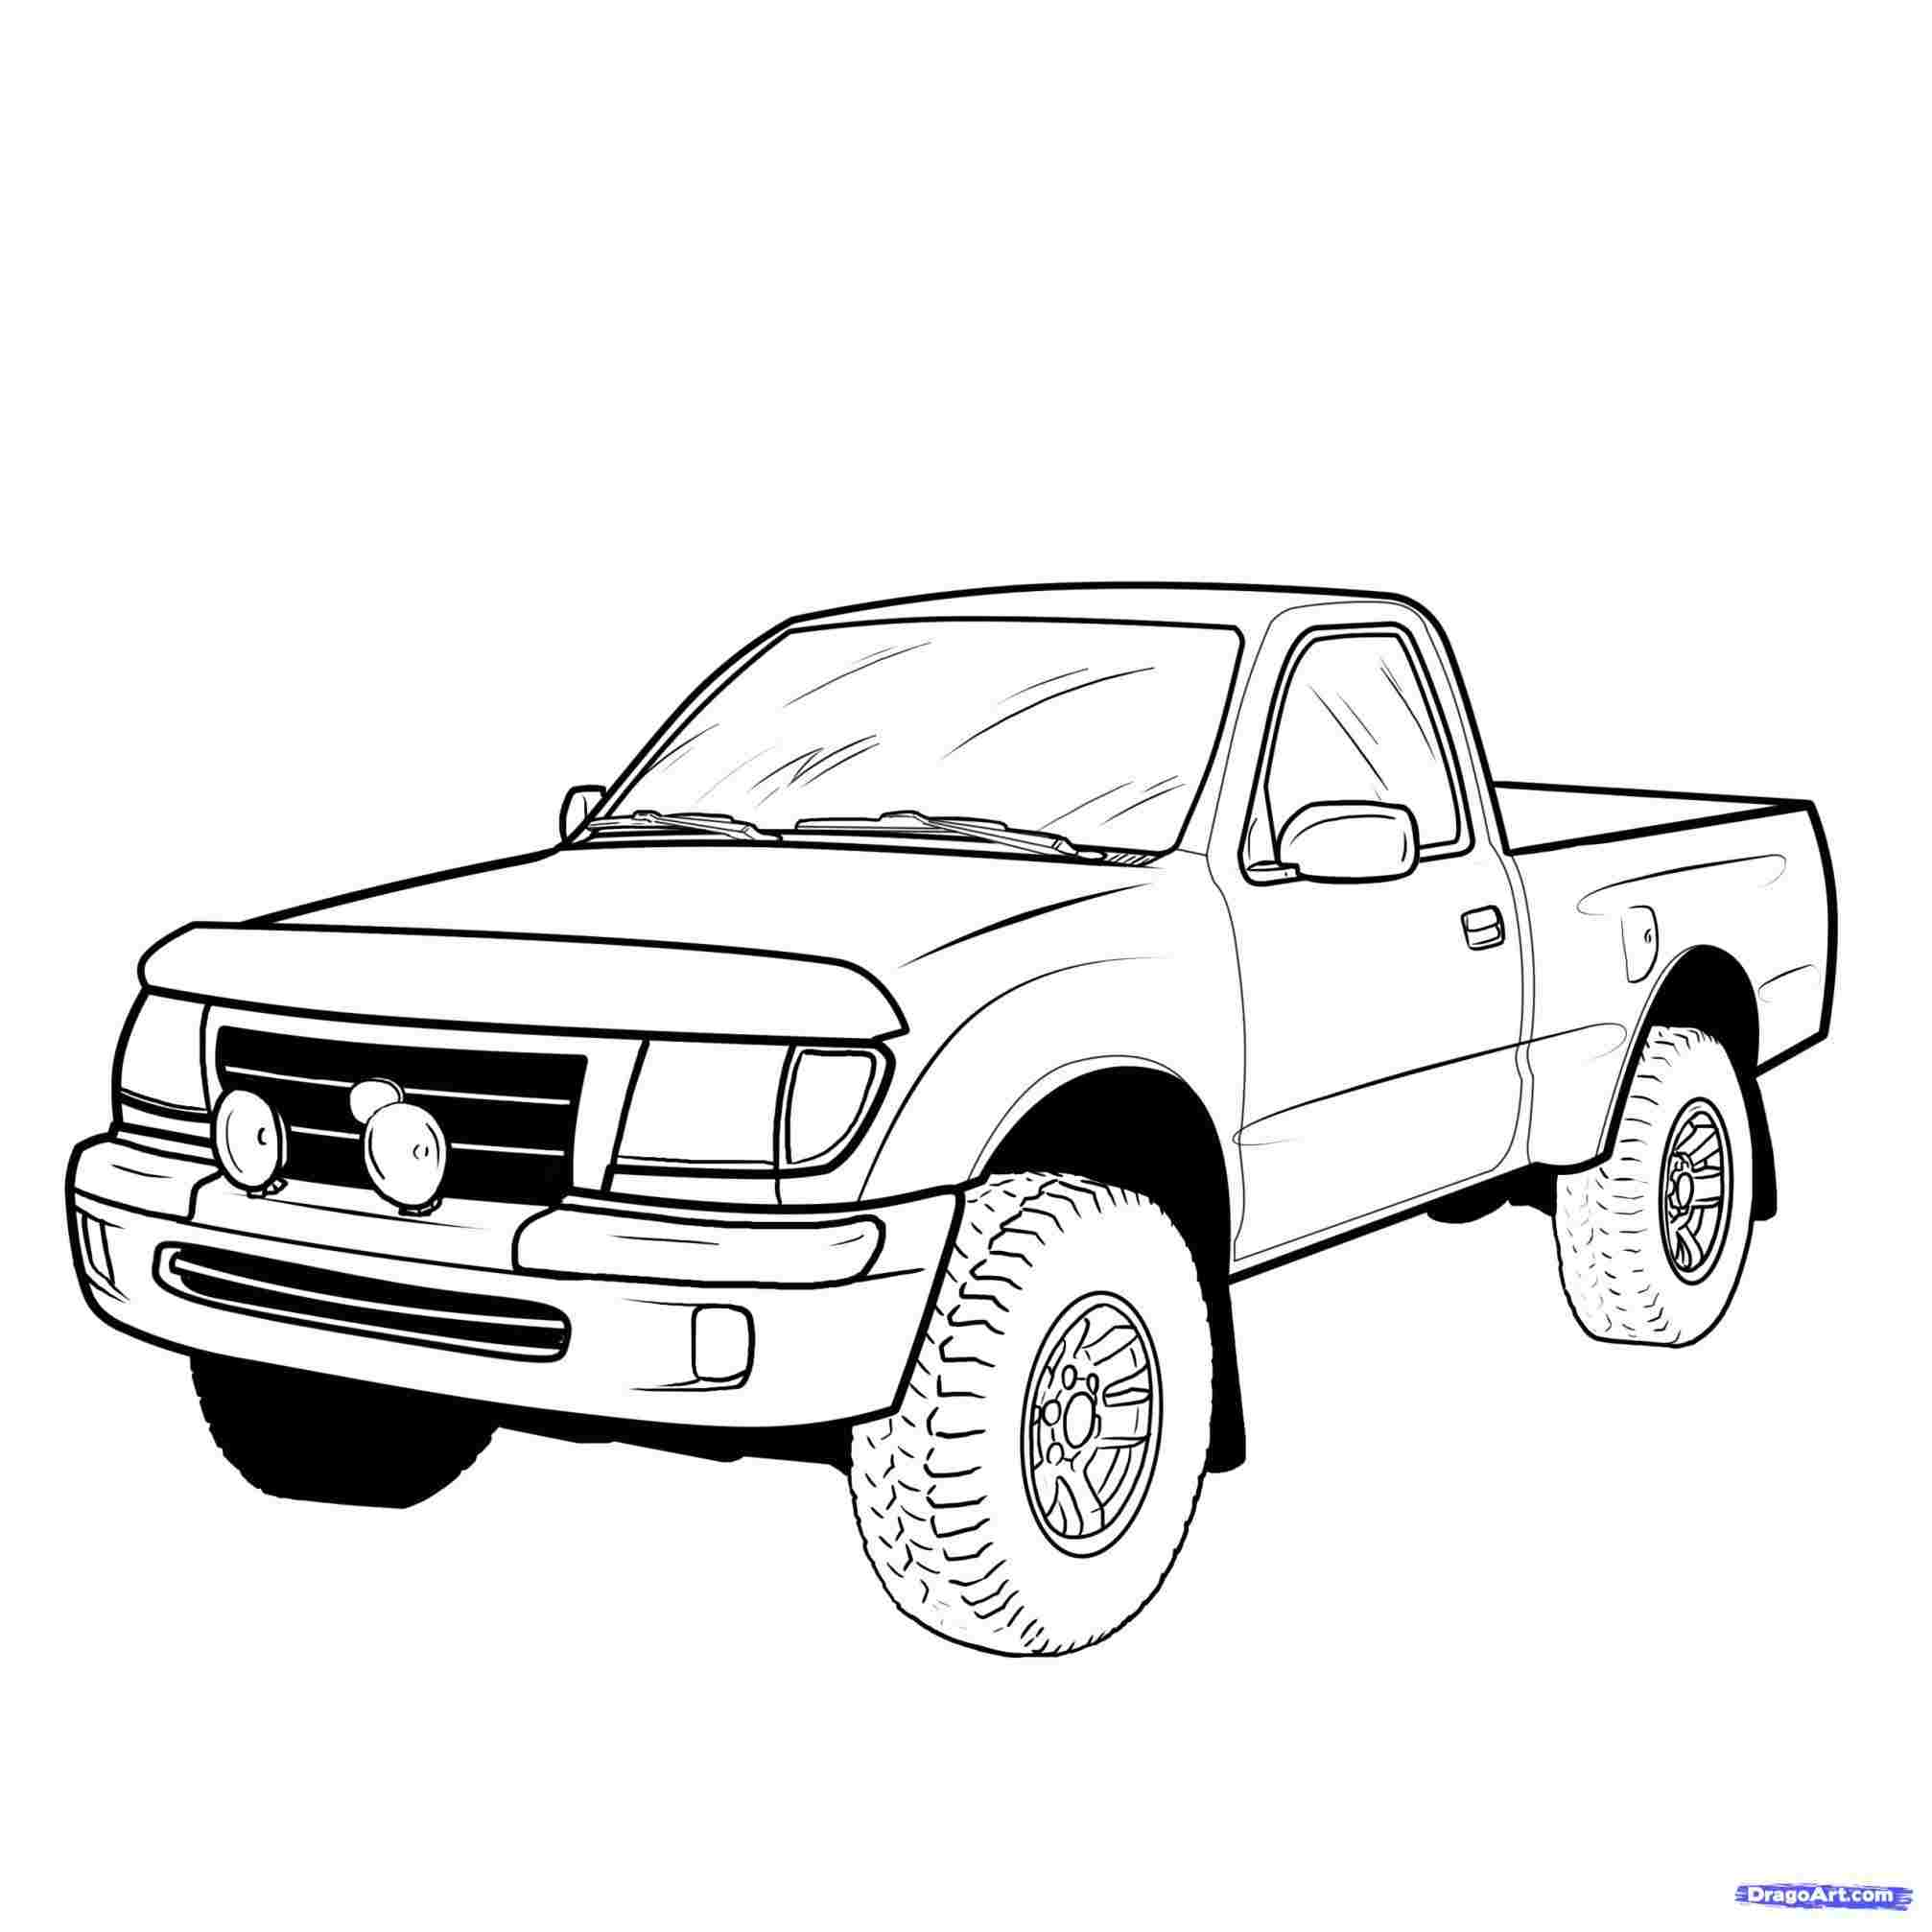 Easy Truck Drawing Free Download Best Easy Truck Drawing On